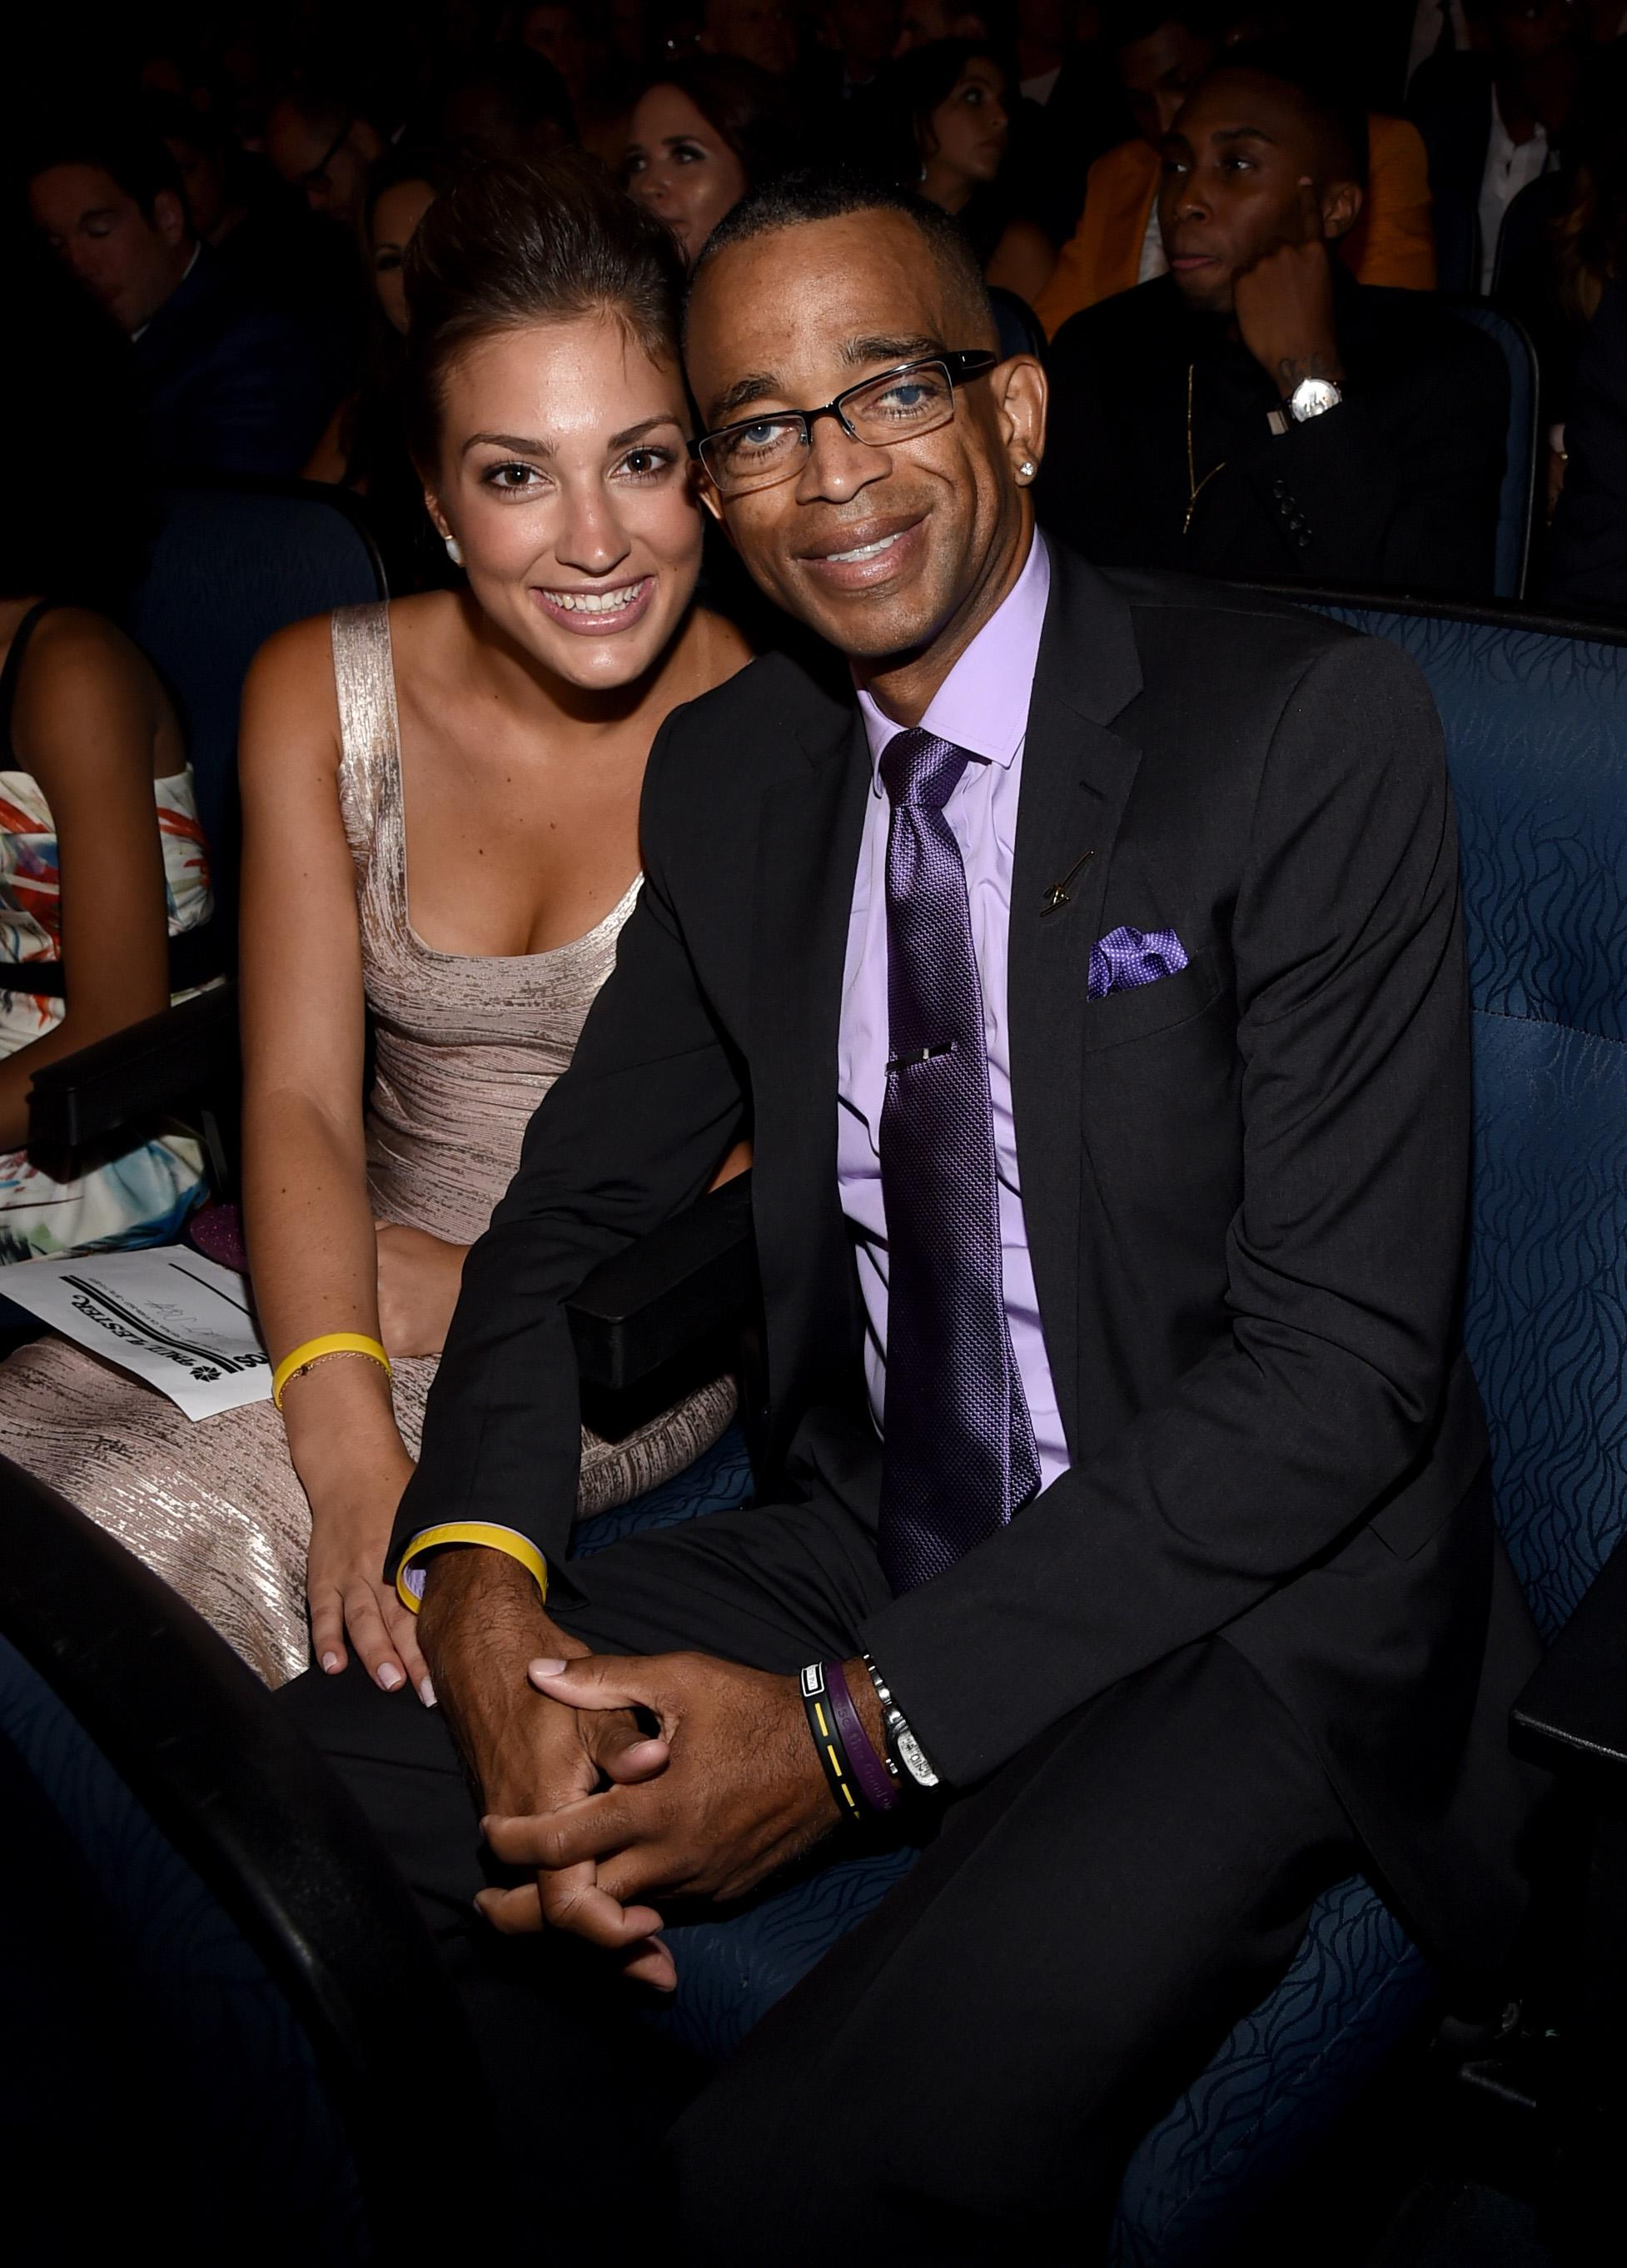 Stuart Scott Dead At 49 The Espn Broadcaster Paved The Way For A New Kind Of Black Voice In Sports Media